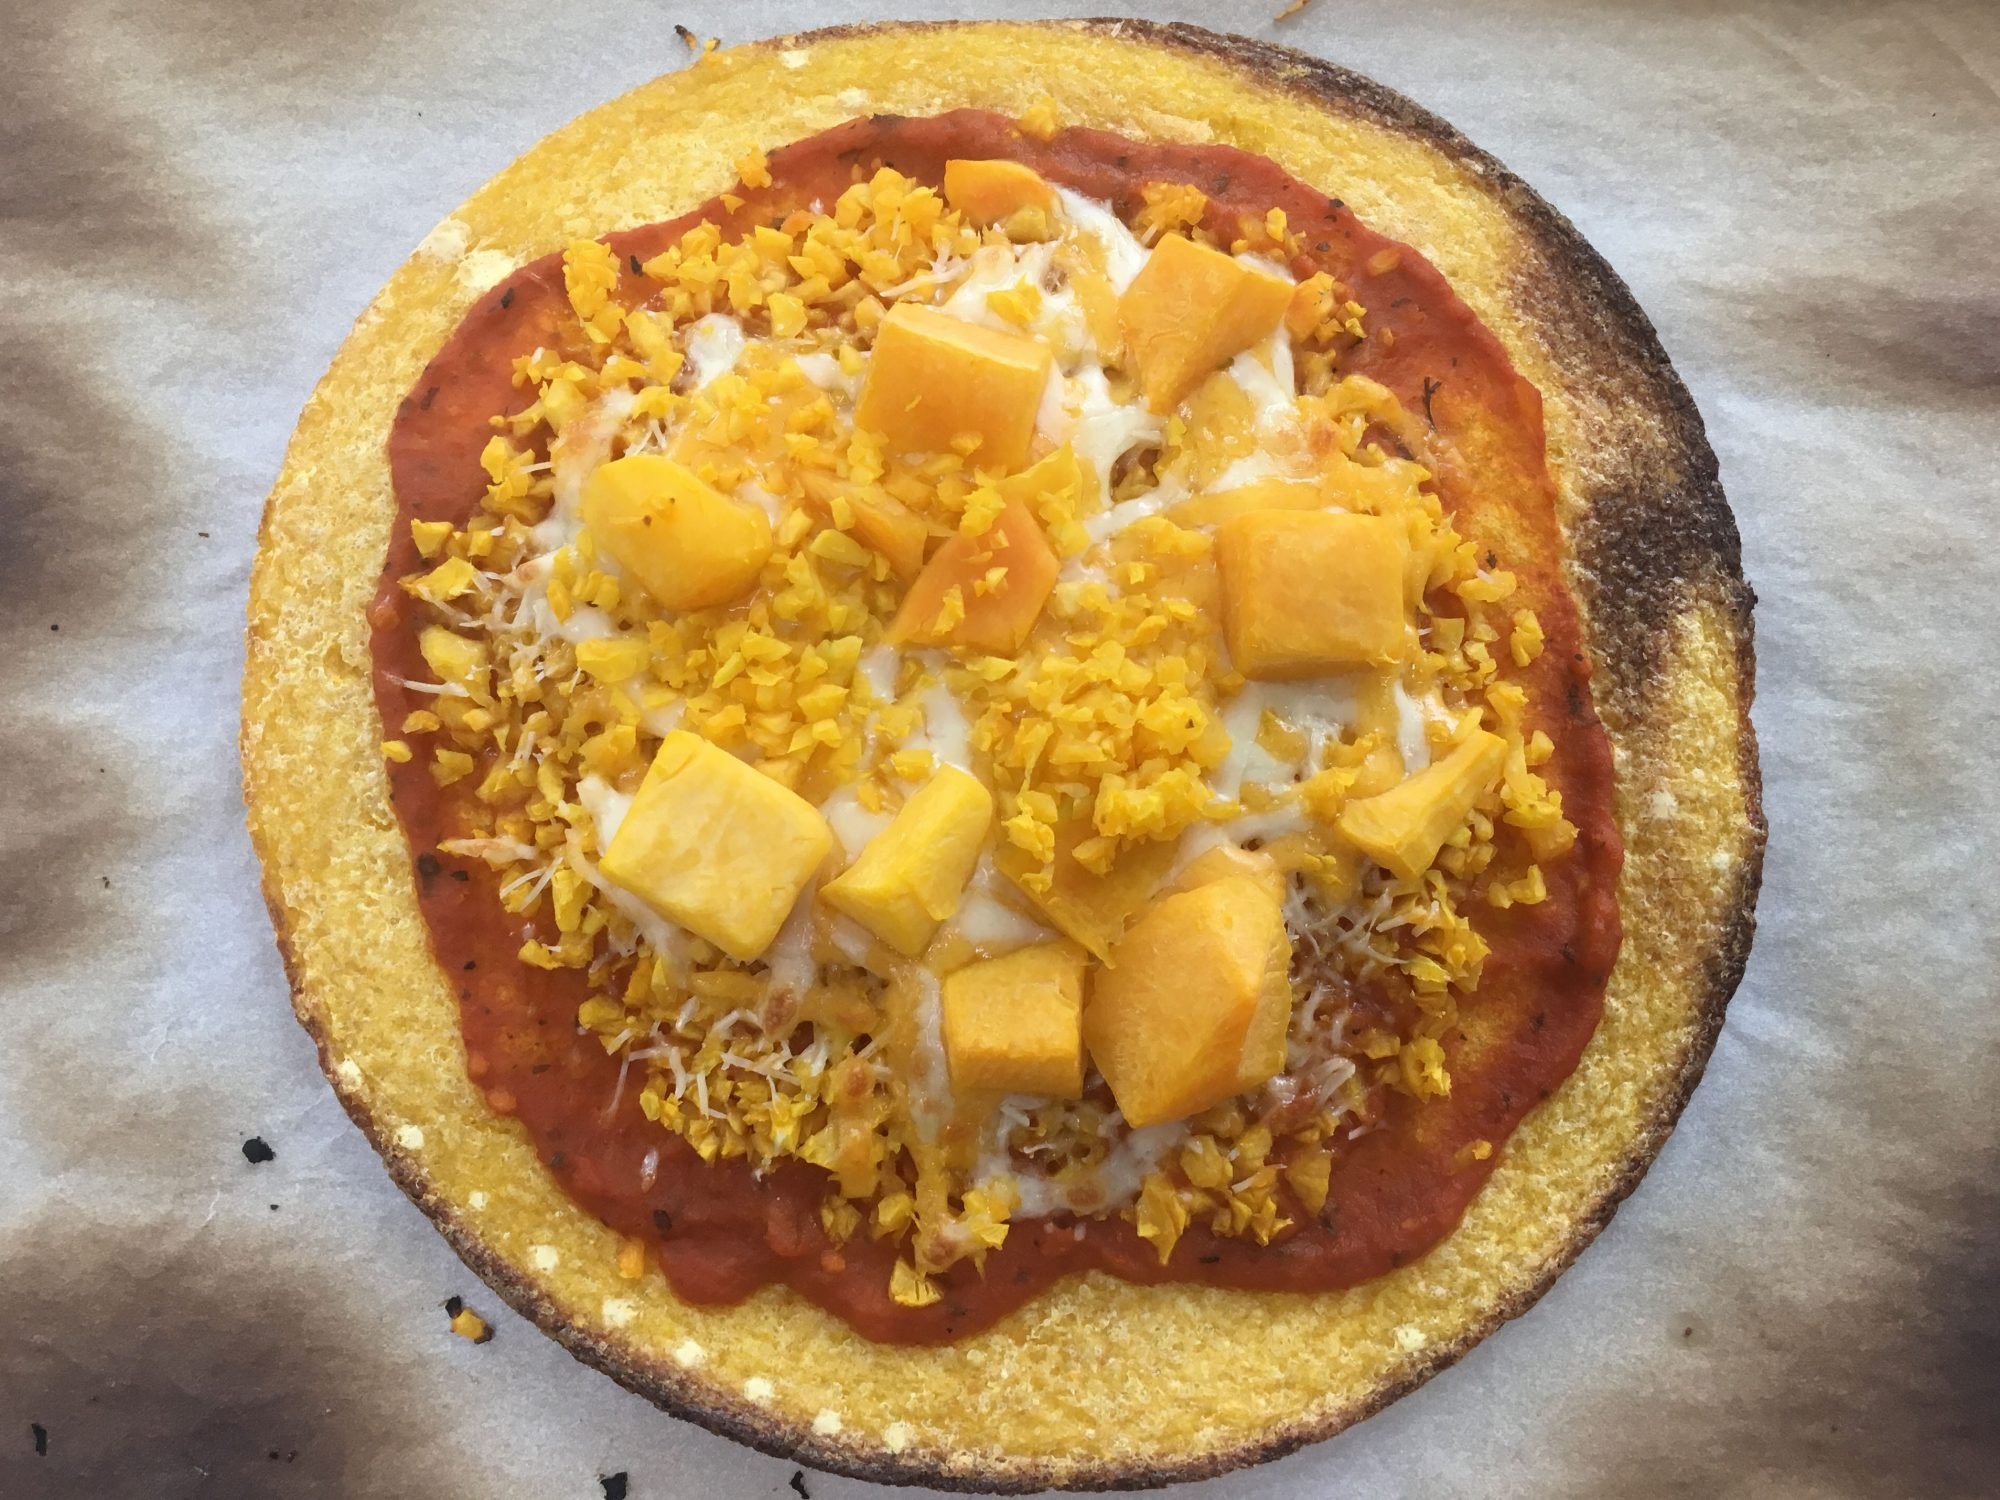 Trader Joe's Butternut Squash Pizza Crust Baked